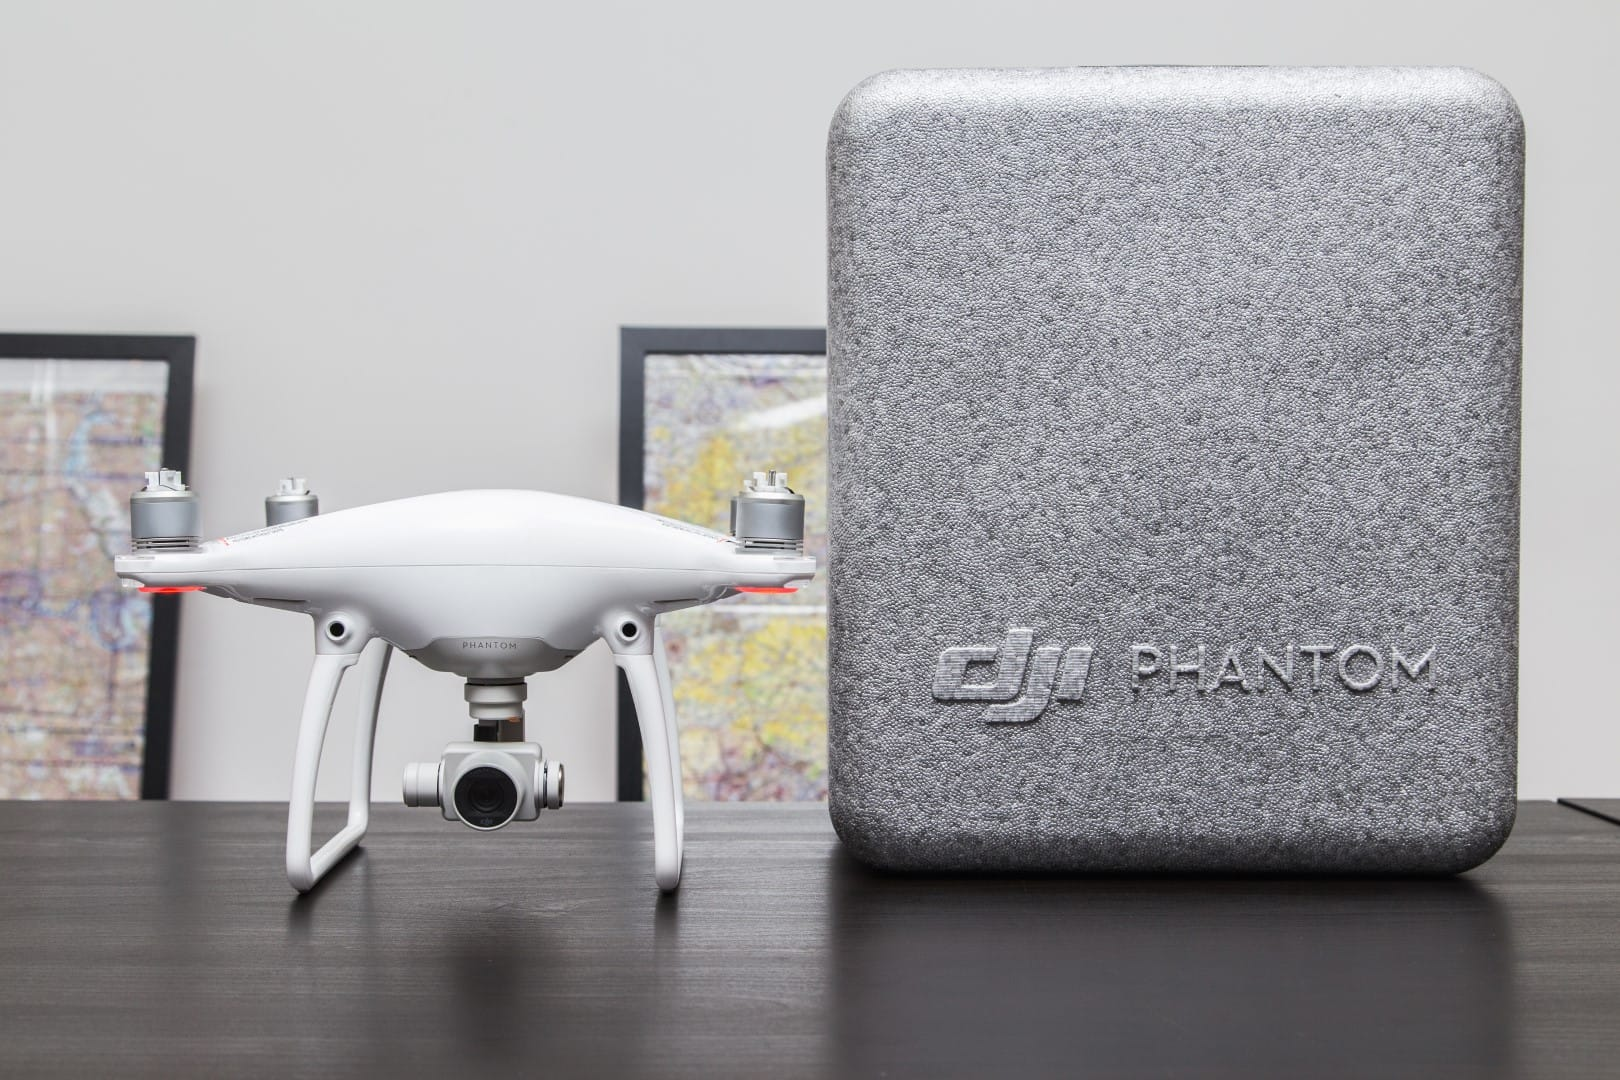 The Phantom 4, remote controller and case